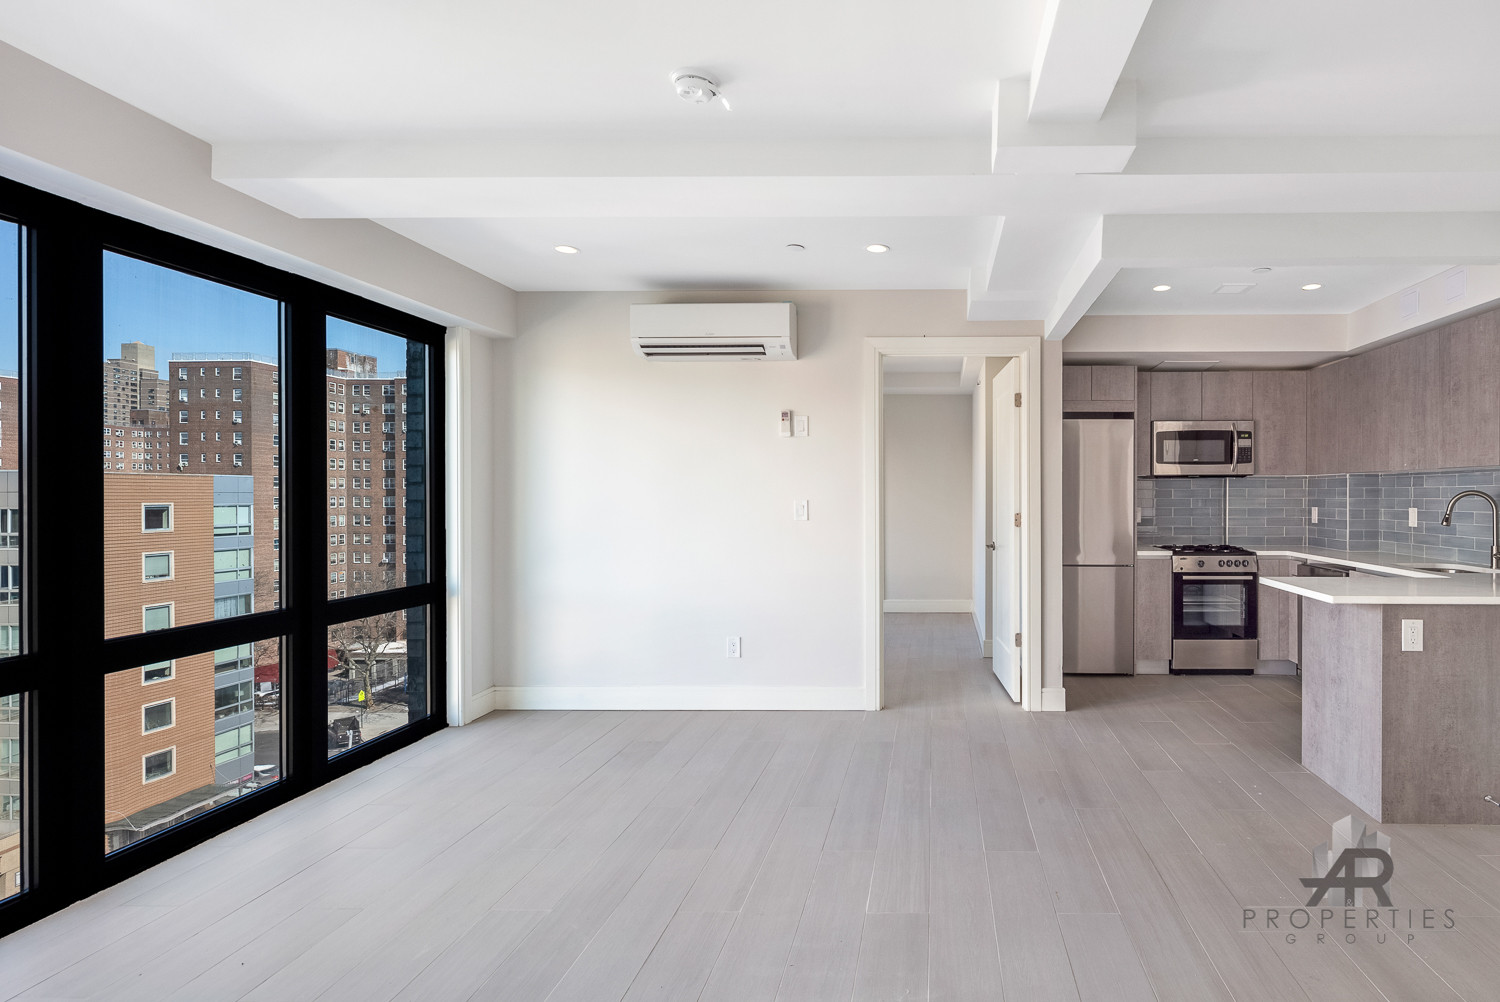 New York City Condo